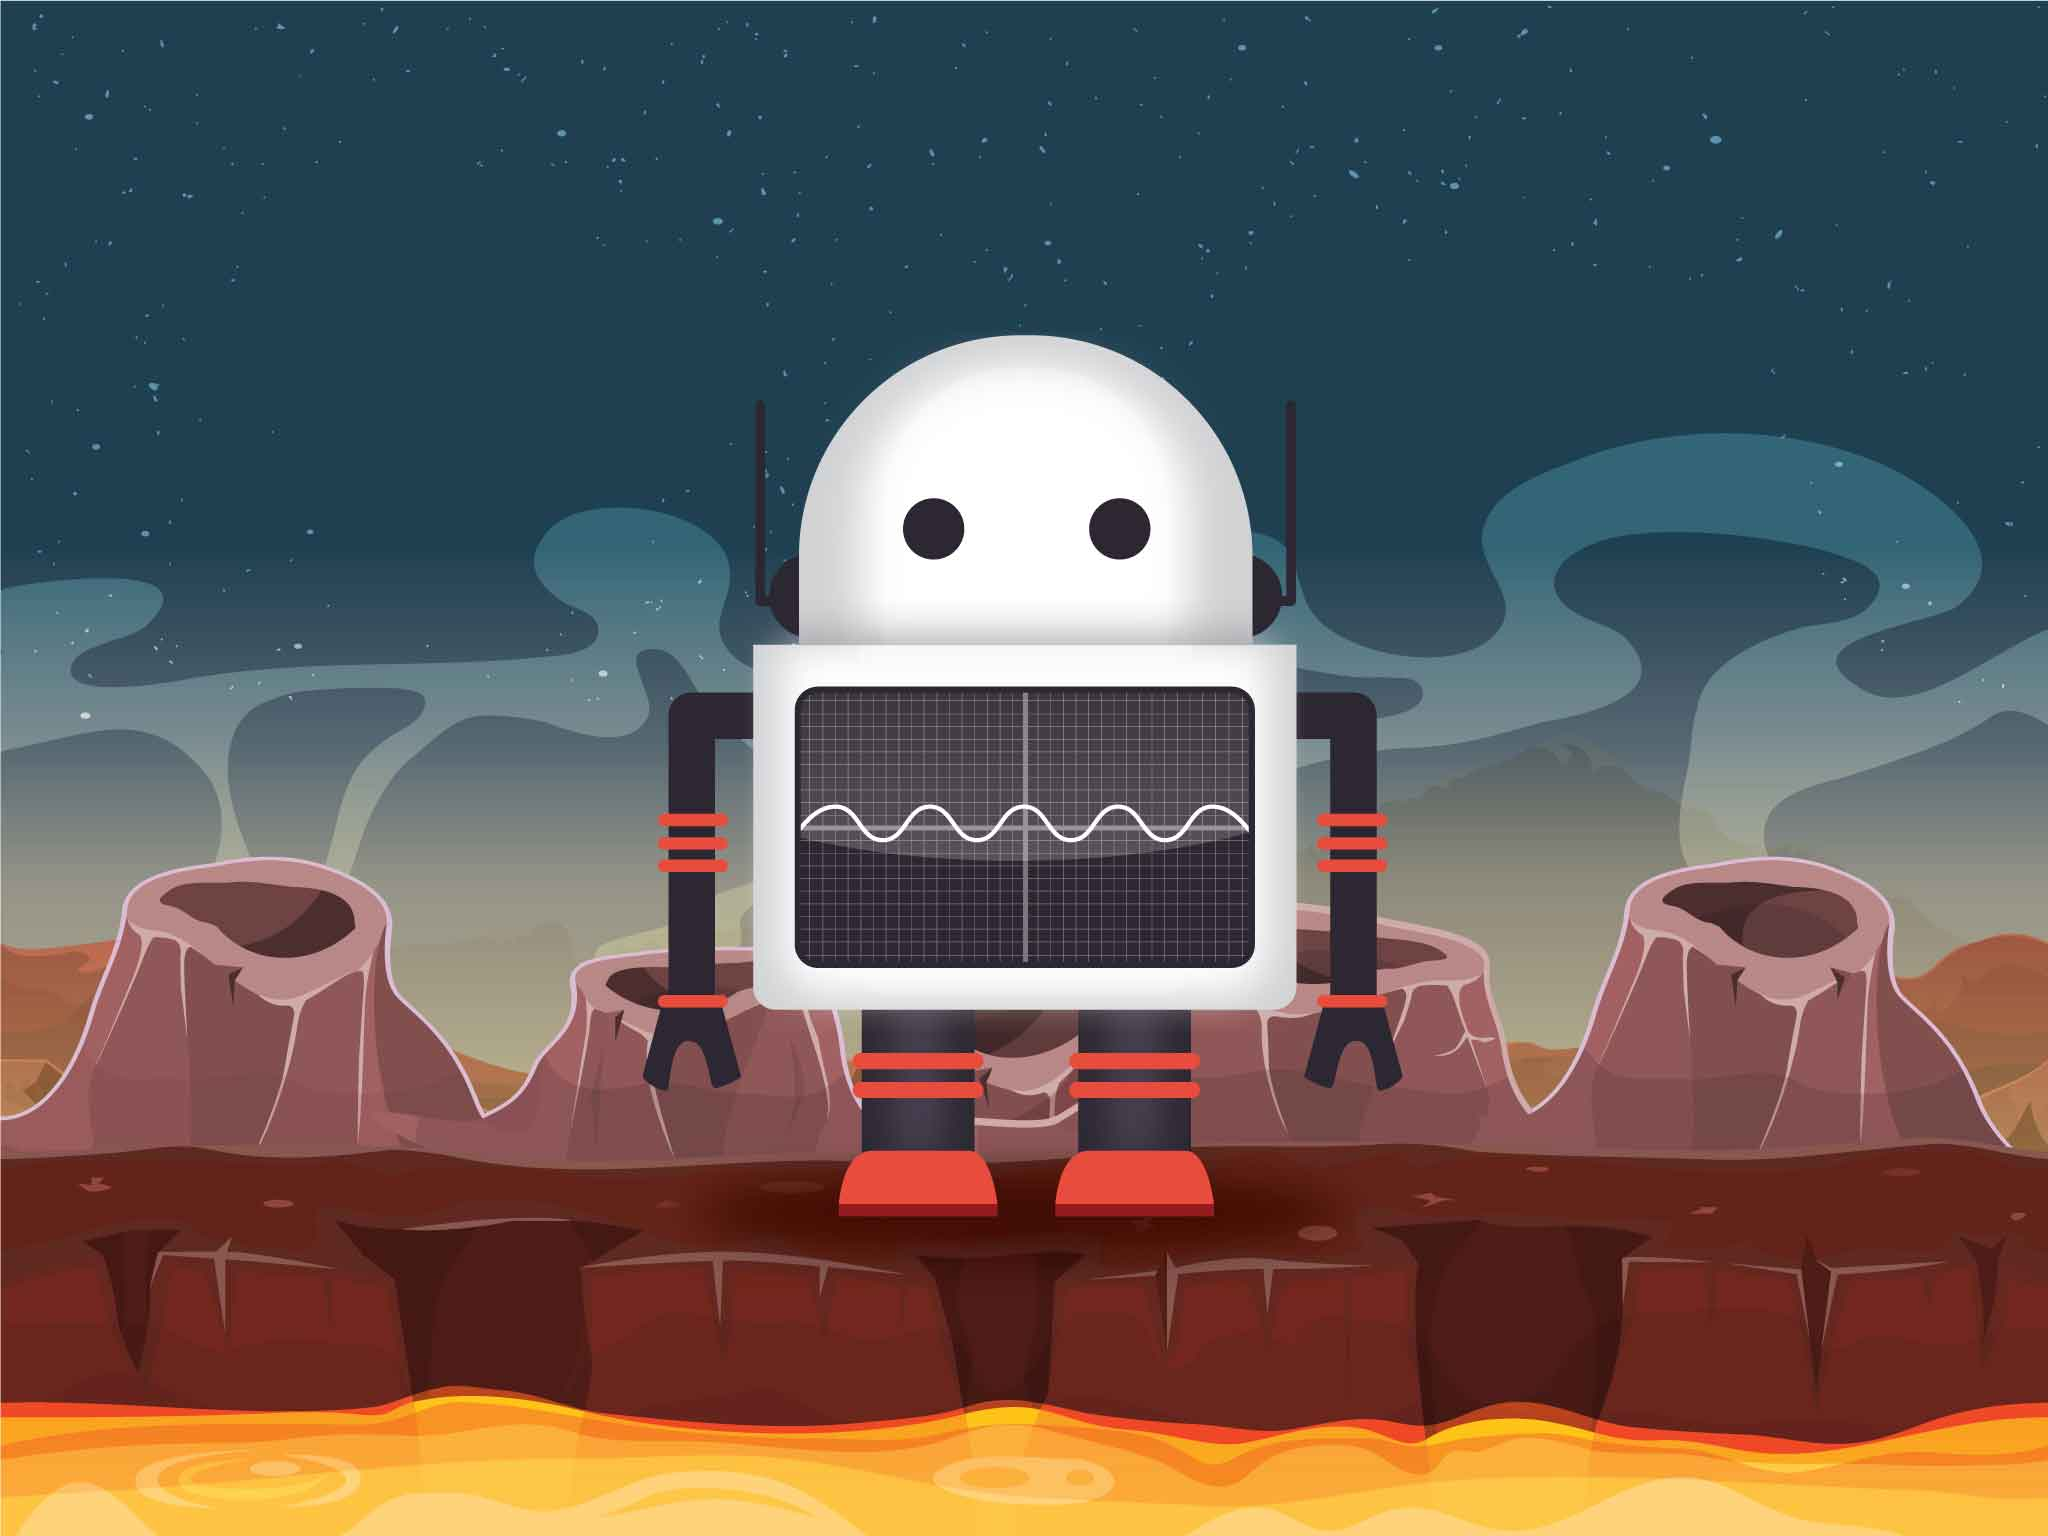 Screen 2: A cute robot is stranded on a volcanic planet.